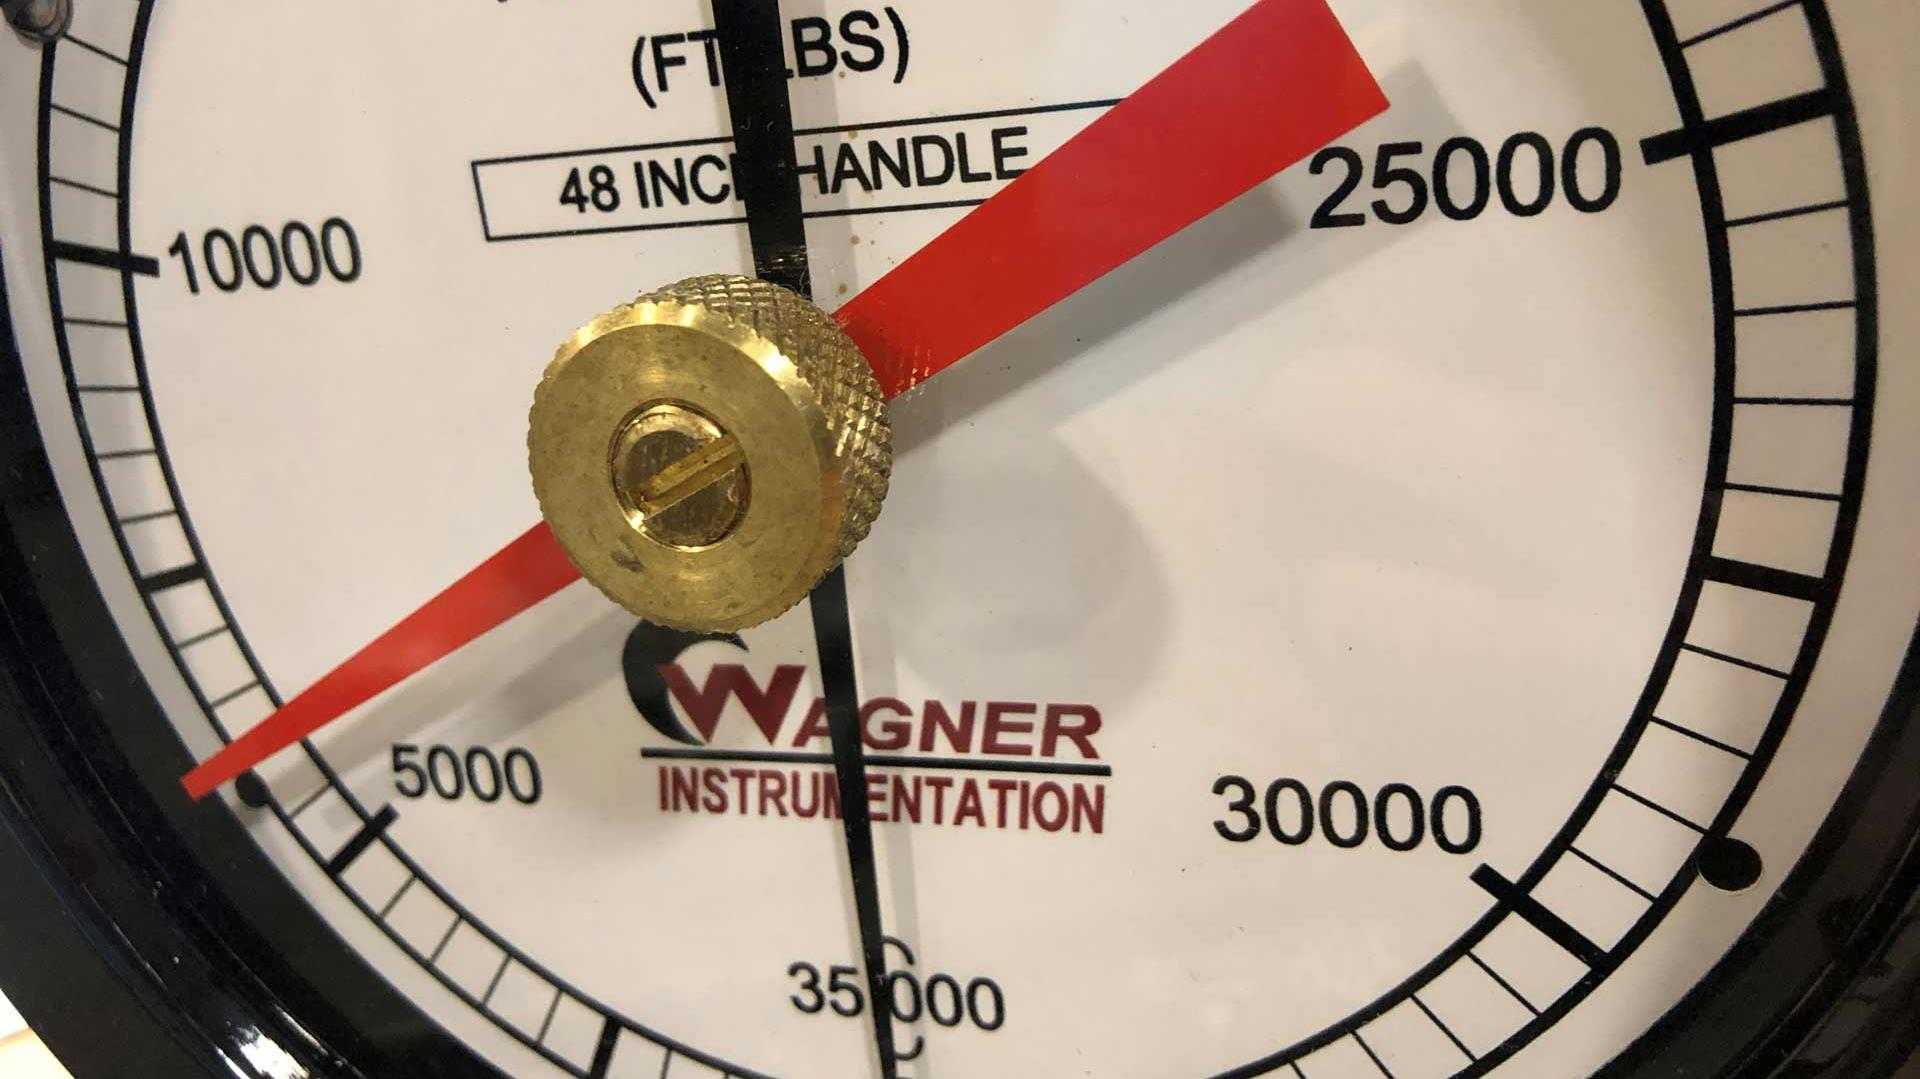 A closeup view of a Wagner Instrumentation gauge face